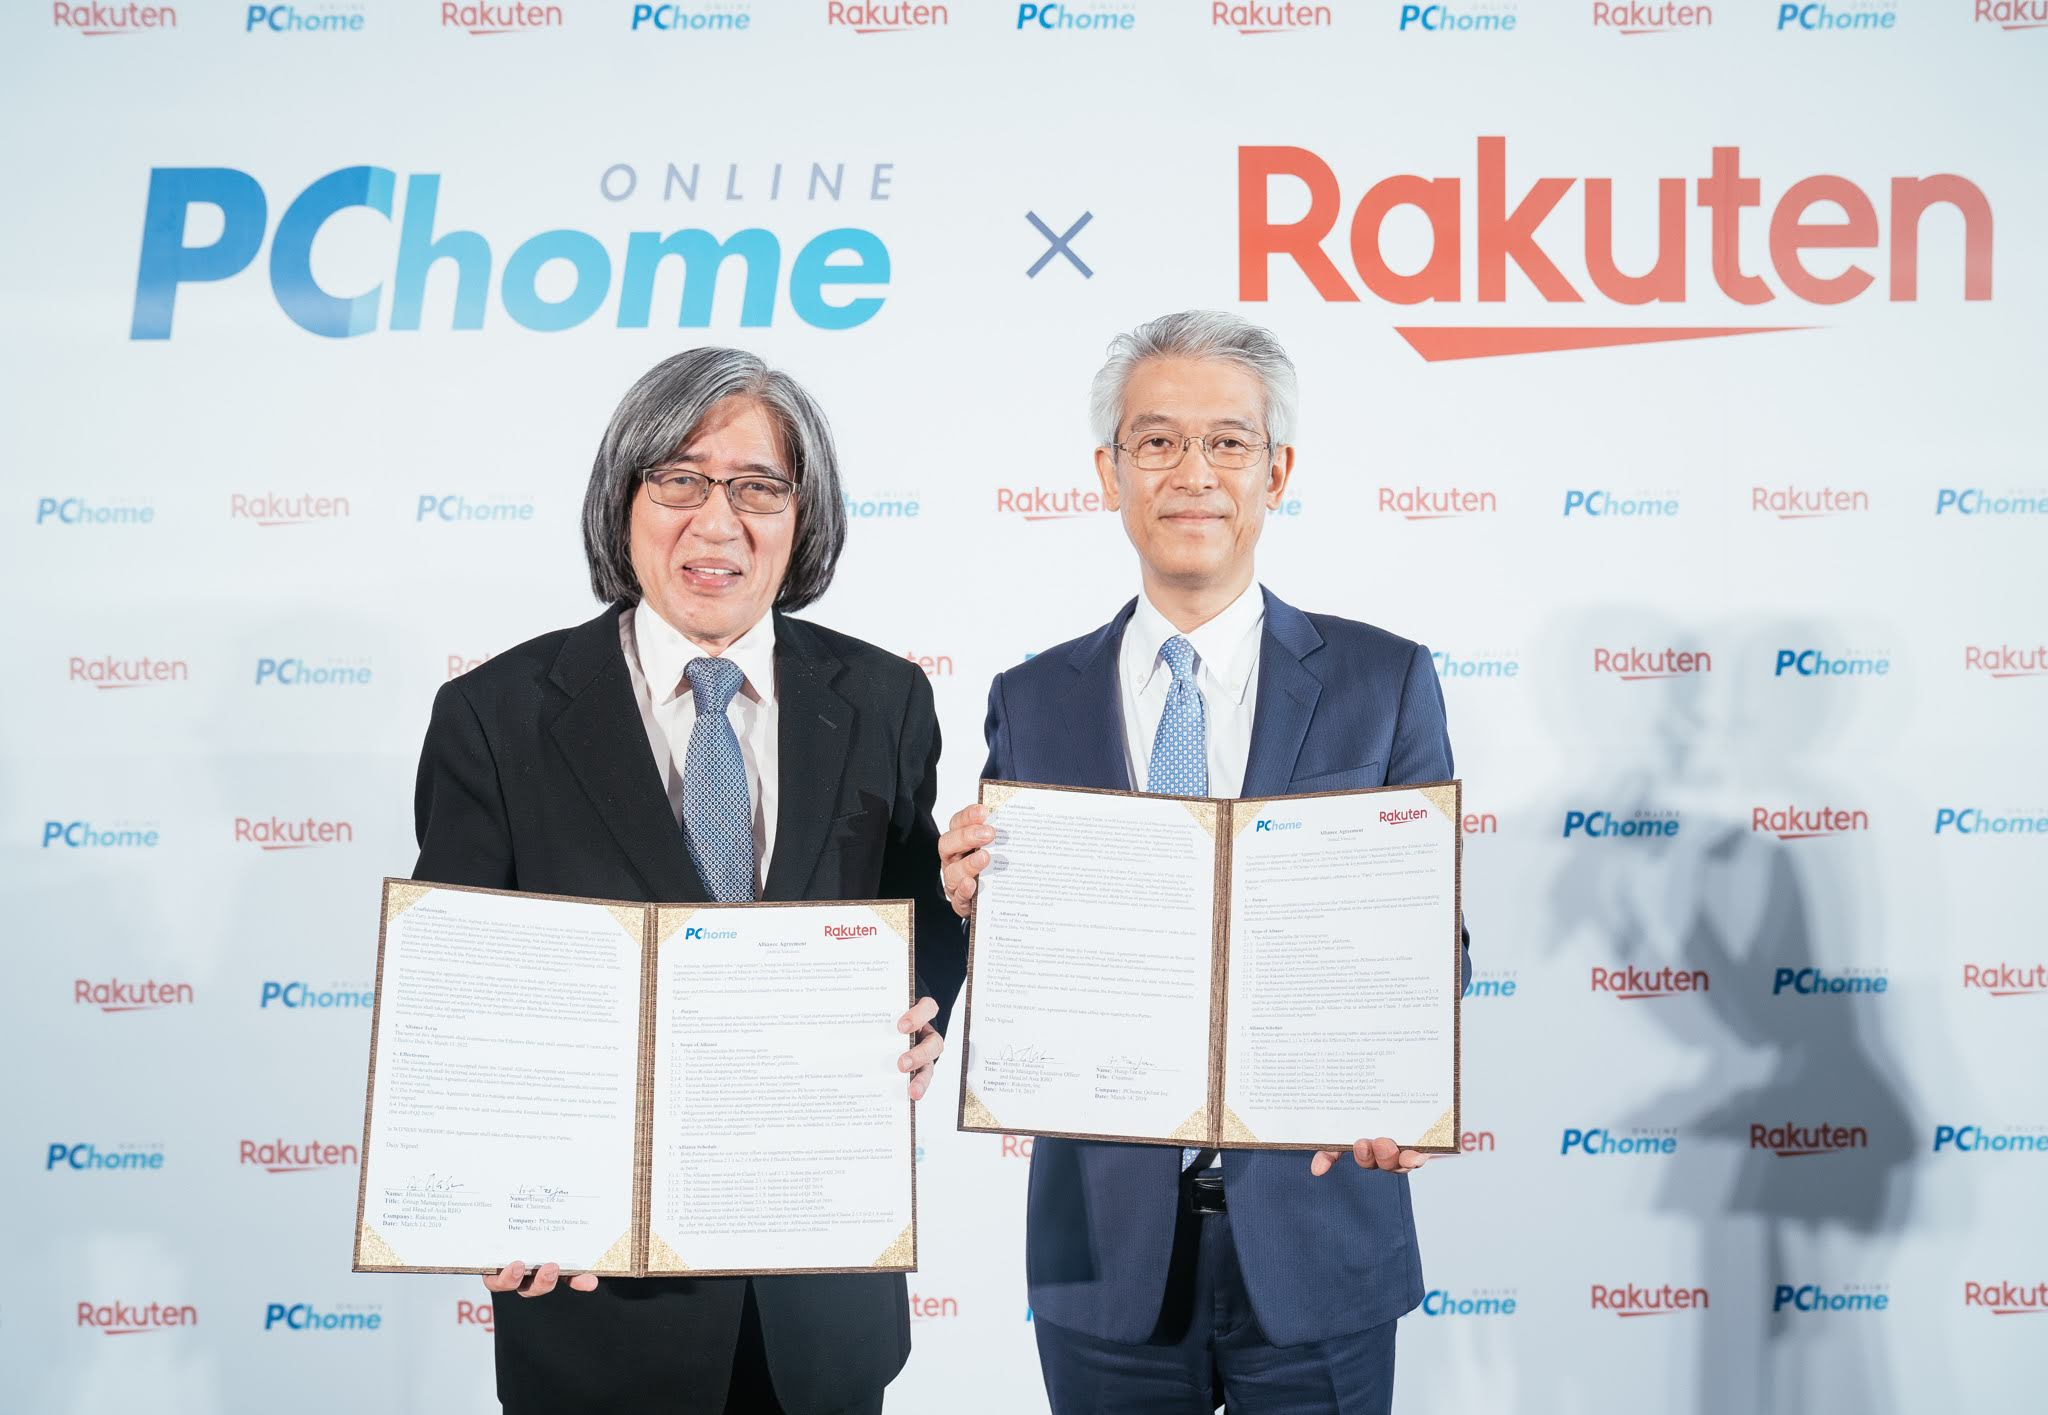 Rakuten and PChome Enter into Alliance Agreement